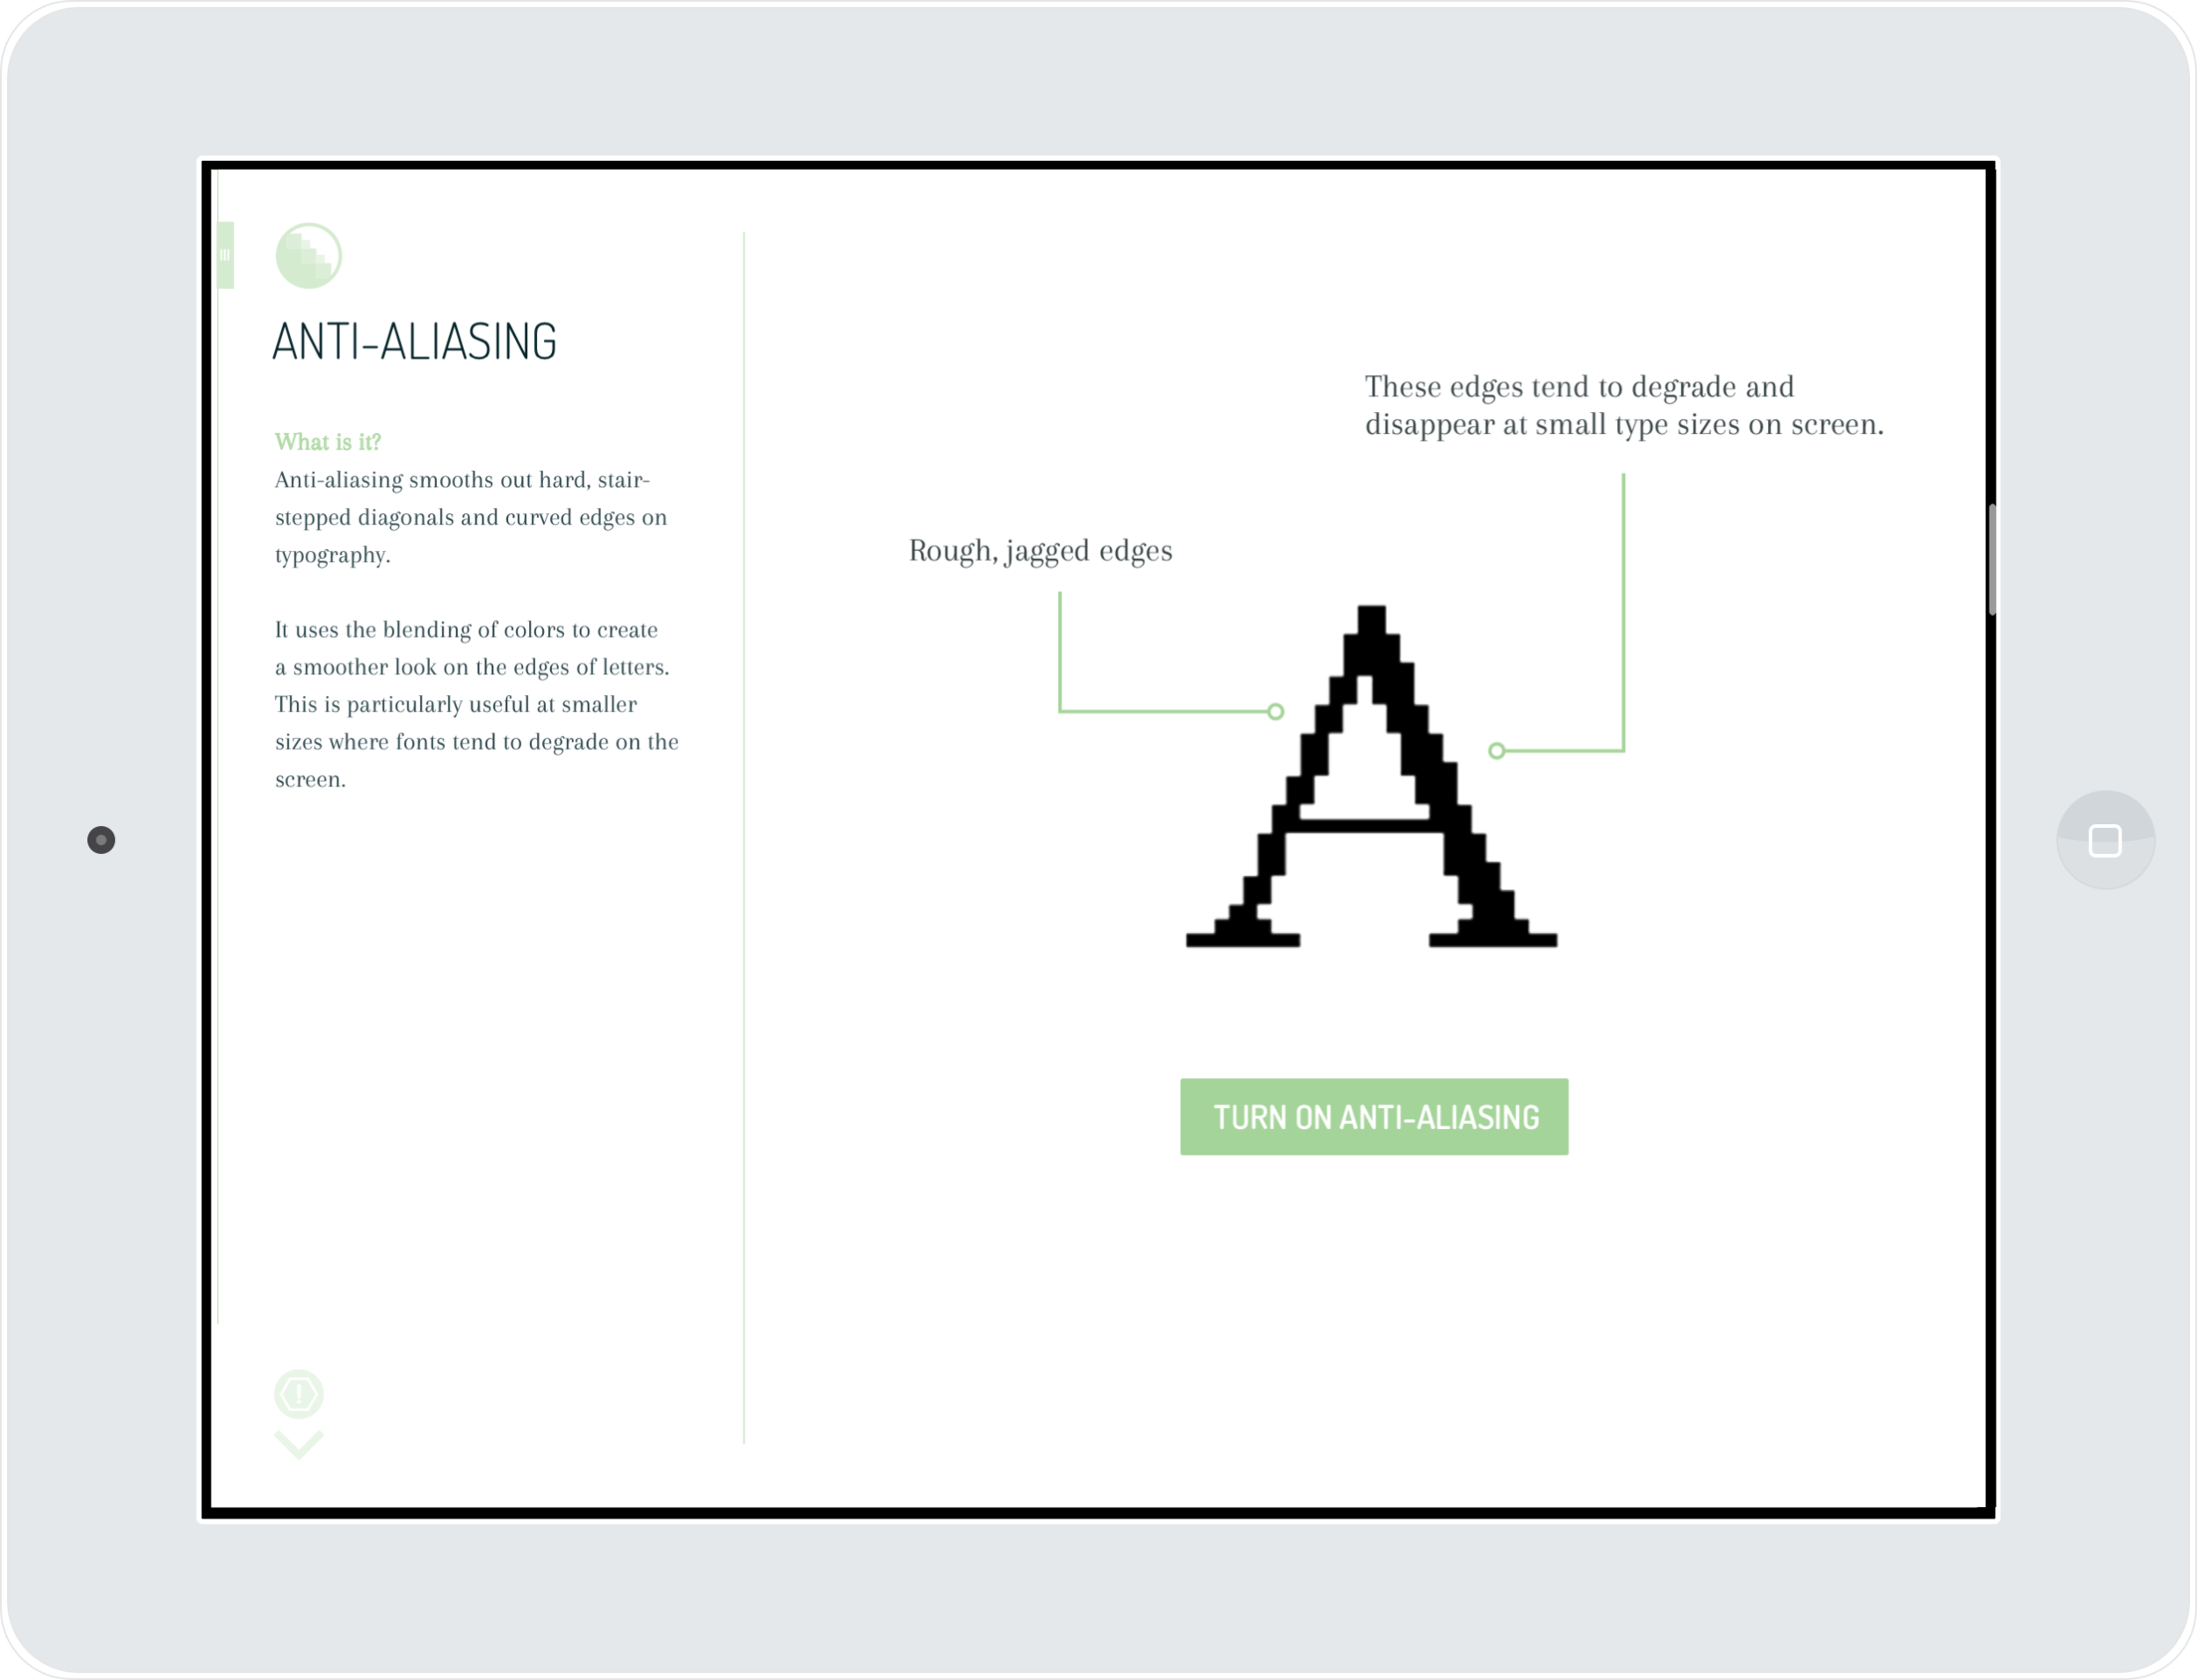 ^ Each section has a short explanation of the topic, as well as an example for readers to better visualize and understand the topic. Here, the concept of anti-aliasing is being shown. Readers can turn anti-aliasing on and off to see the differences.